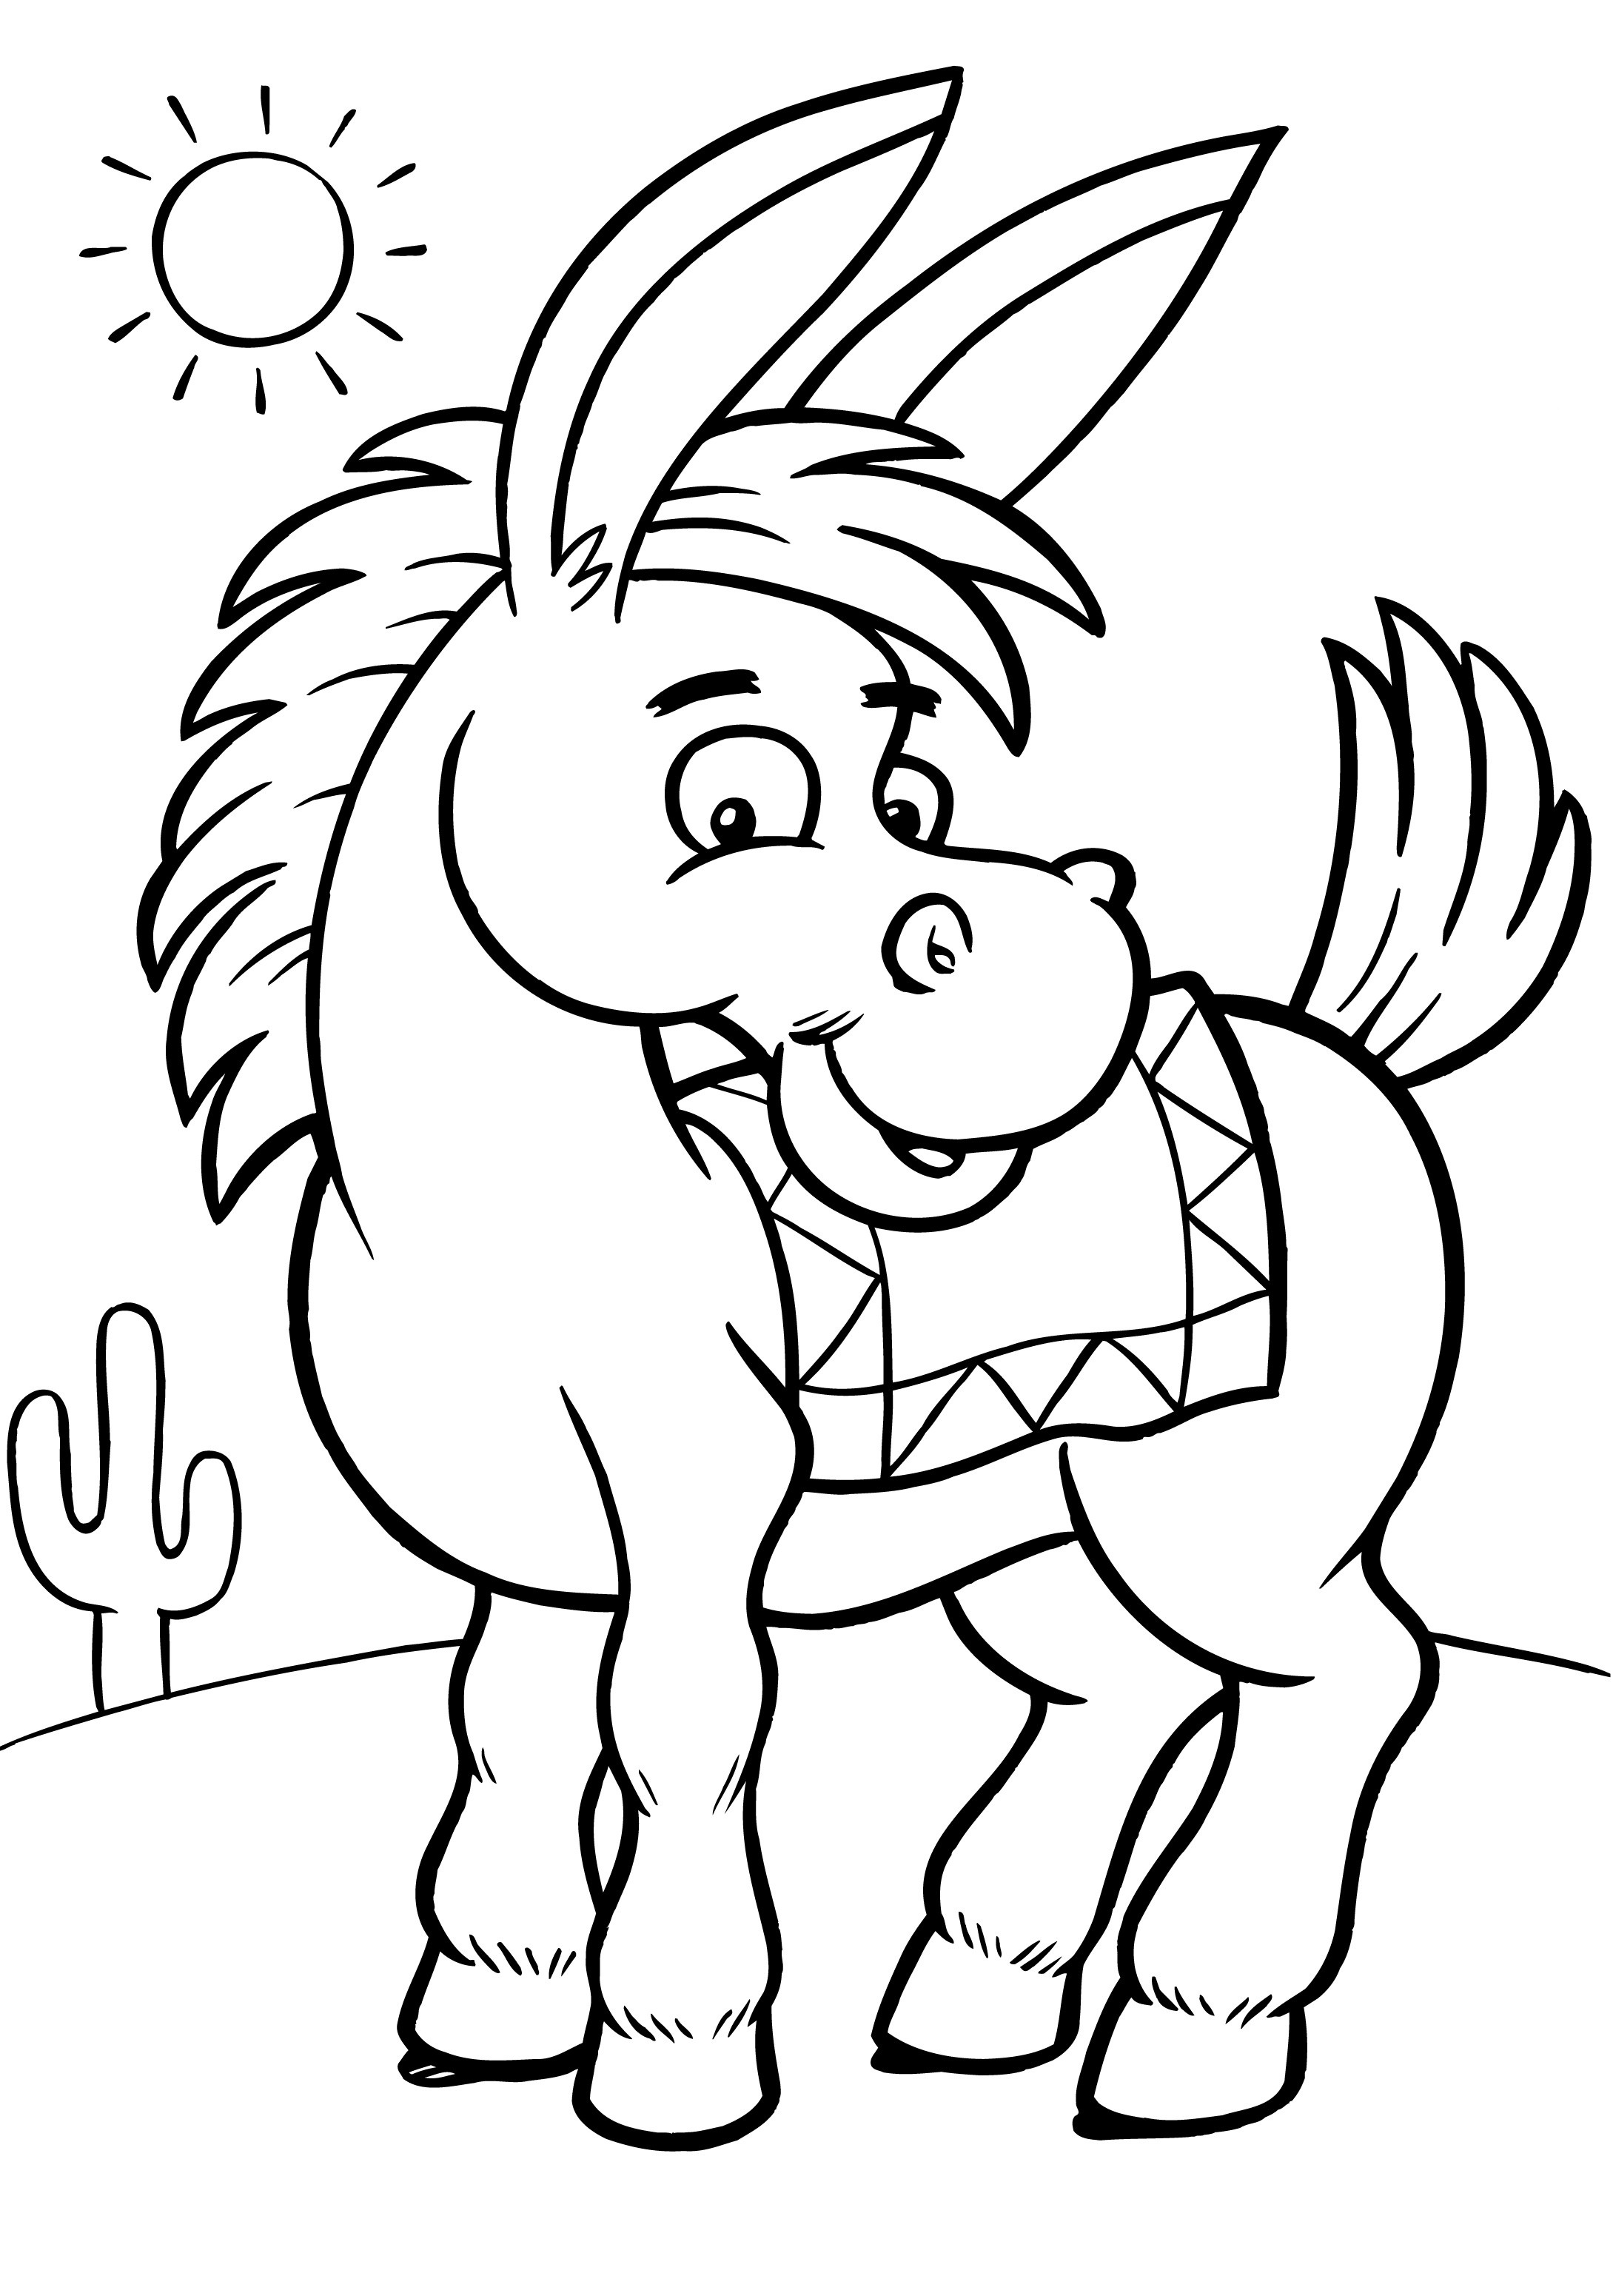 donkey coloring pages color this donkey for easter color the bible coloring donkey pages